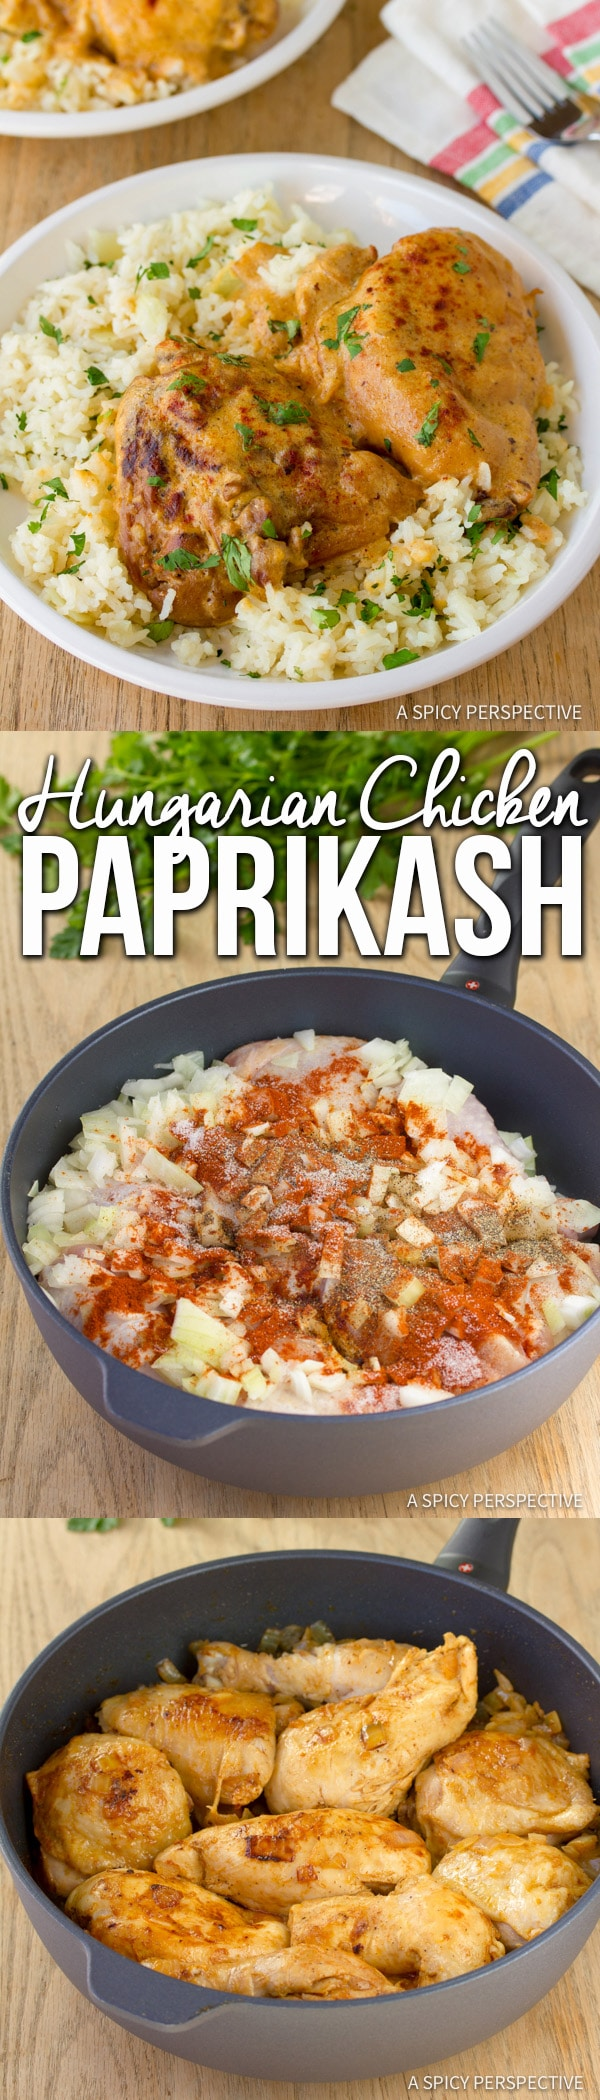 Creamy Hungarian Chicken Paprikash (Paprikas) | ASpicyPerspective.com